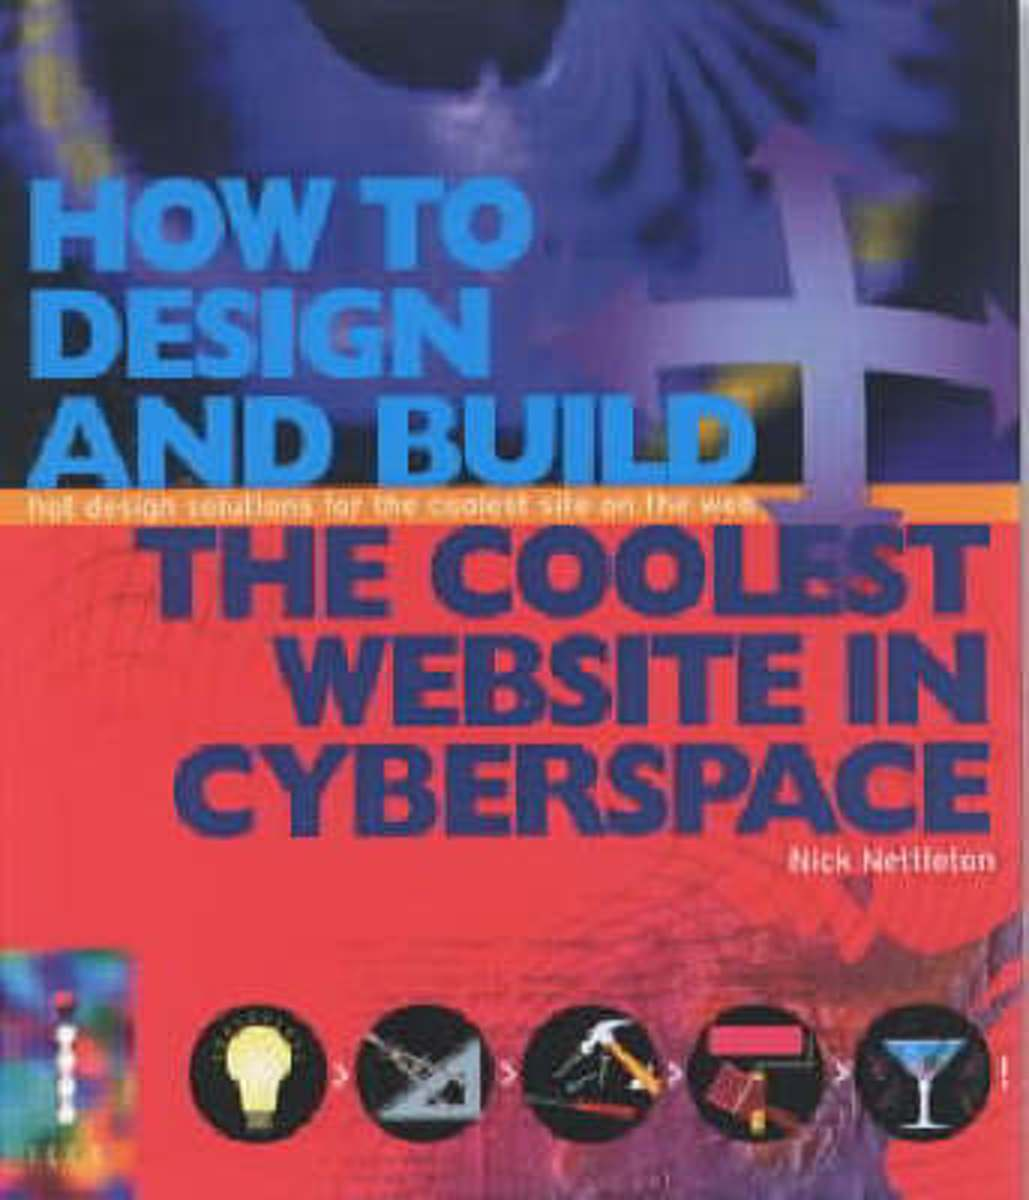 How To Design and Build the Coolest Website in Cyberspace - Hot Design Solutions